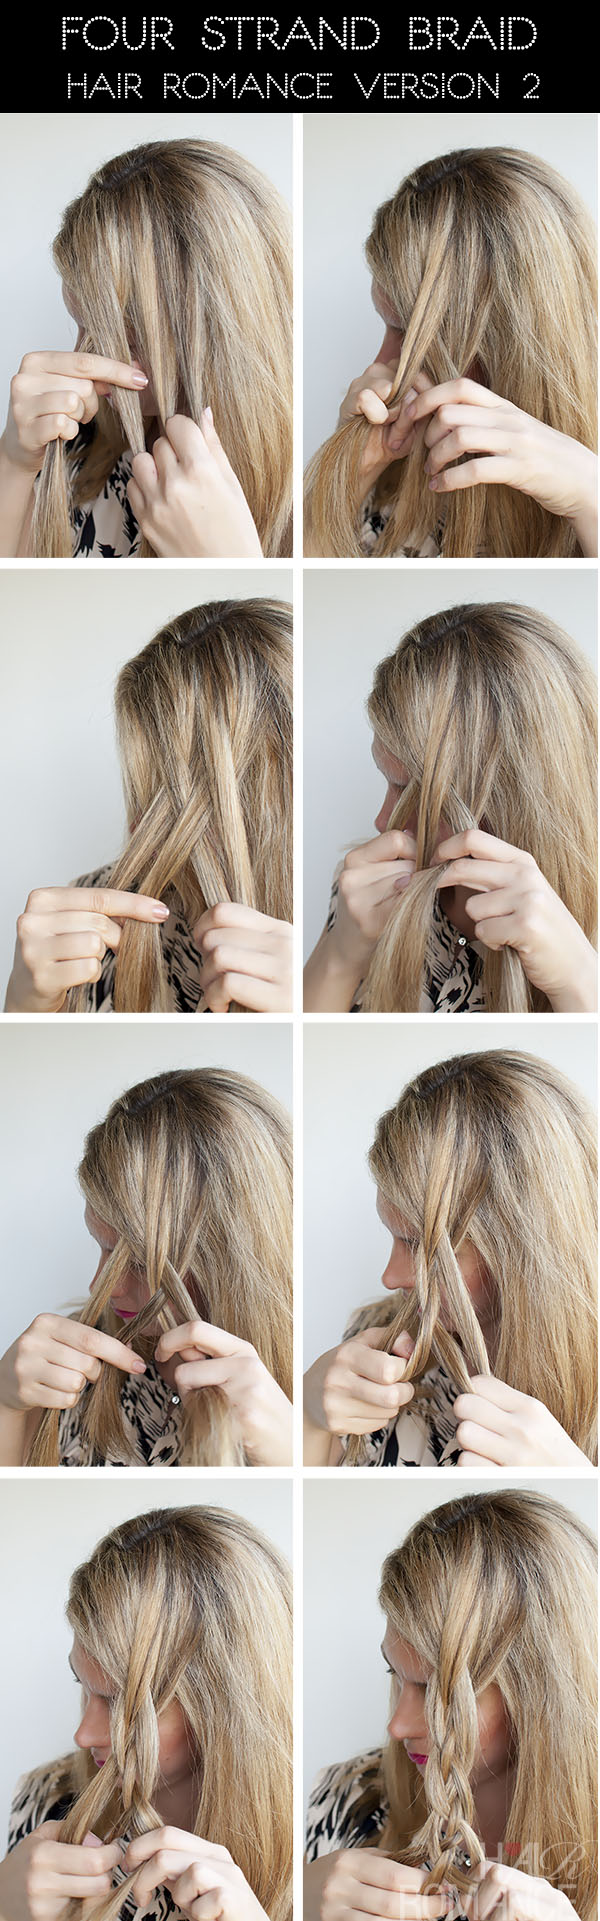 Hair Romance - 4 Strand Braid Tutorial - version 2